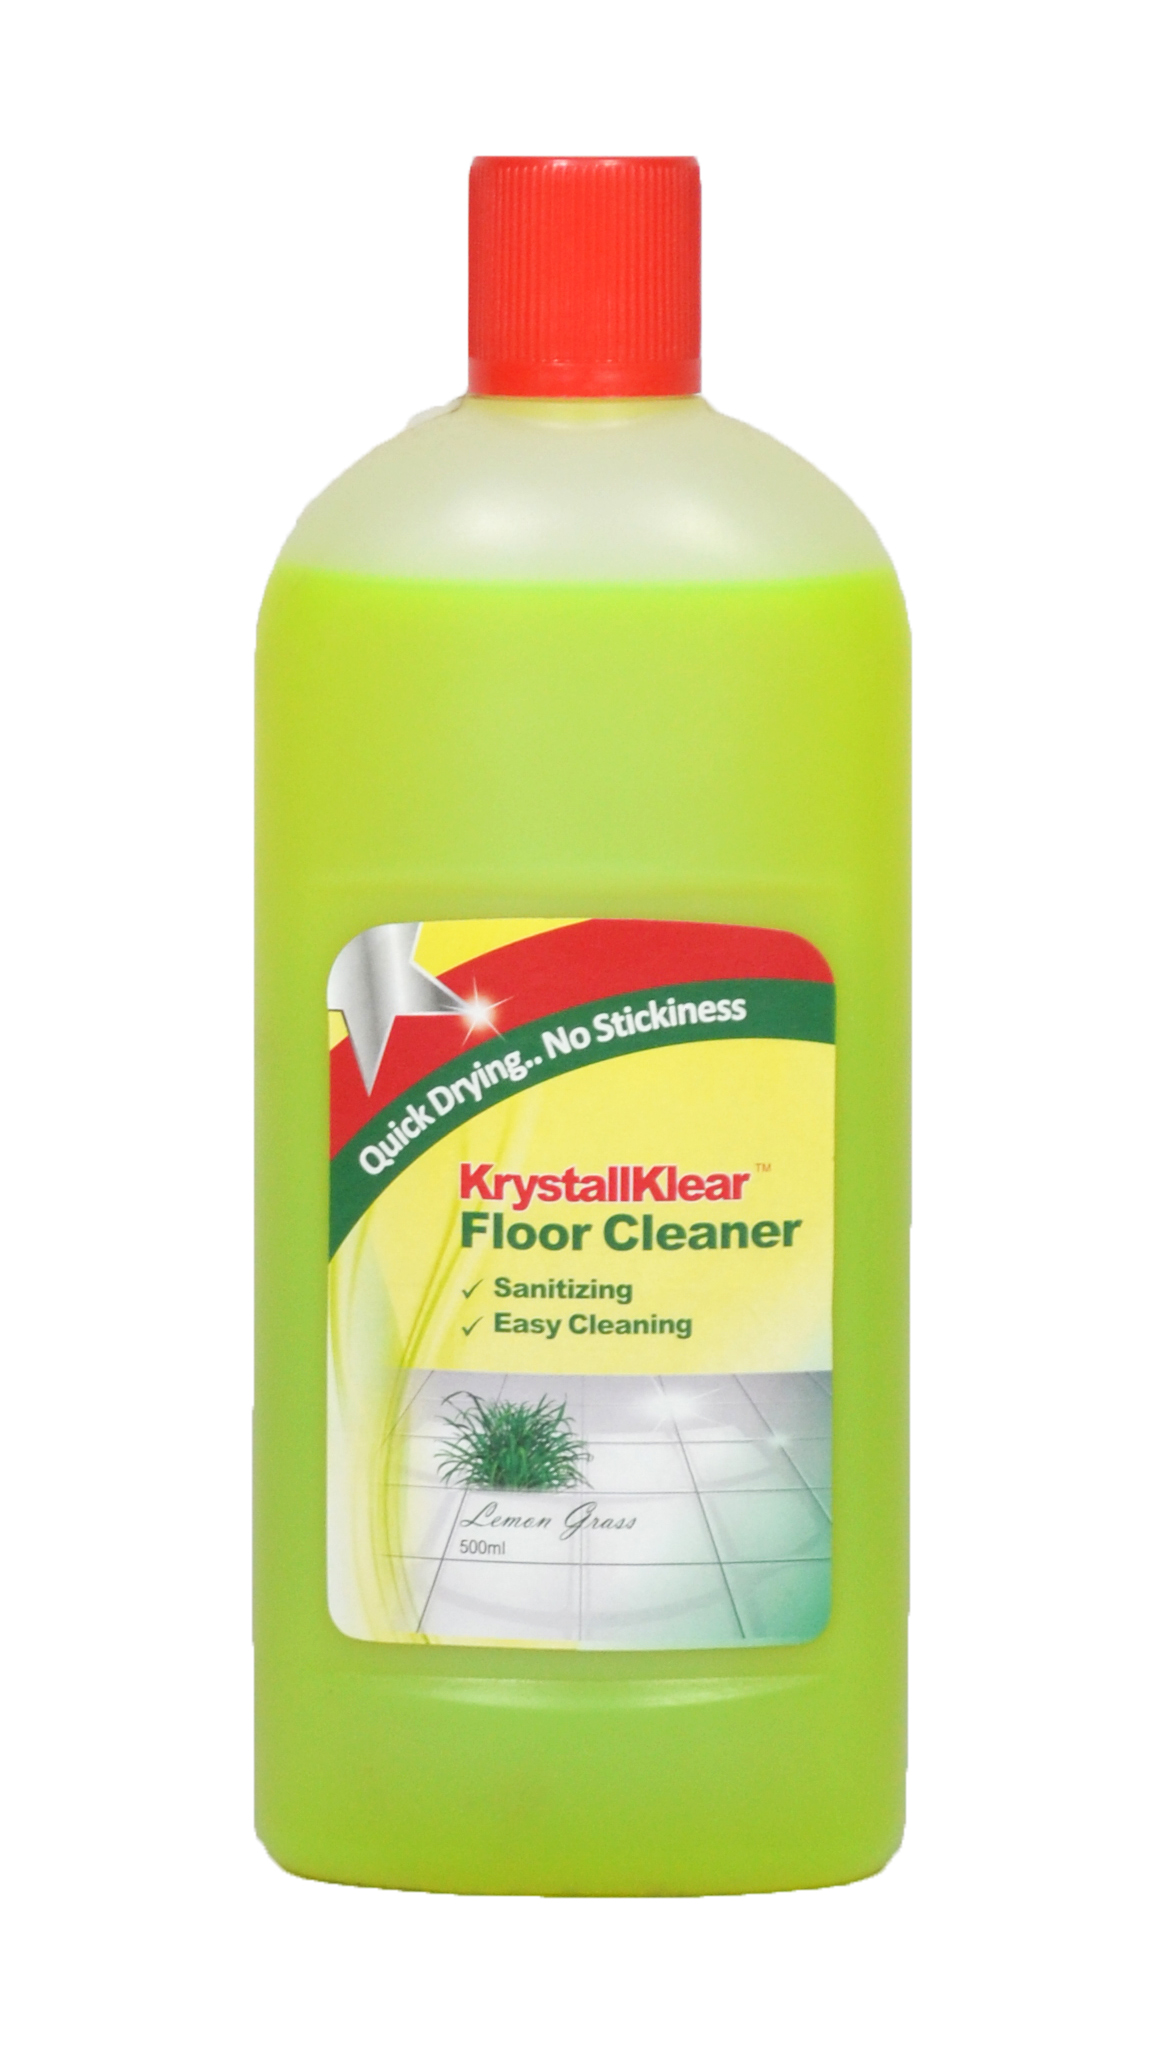 Lemon Grass Floor Cleaner 200ml